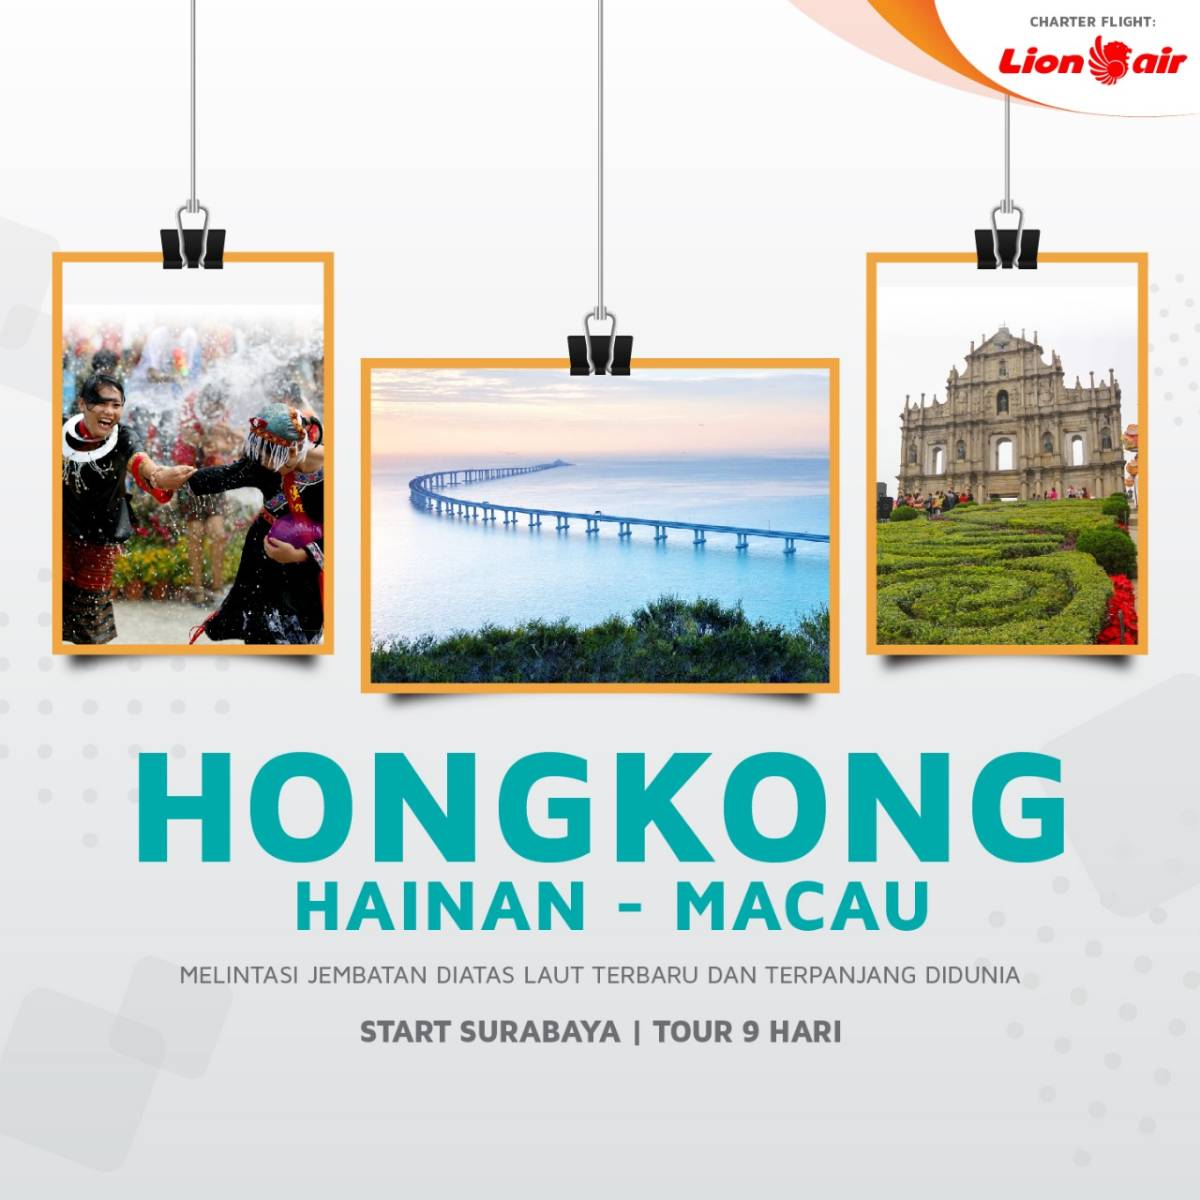 CHARTER FLIGHT TOUR HONGKONG + MACAU + HAINAN - STARTING SURABAYA0